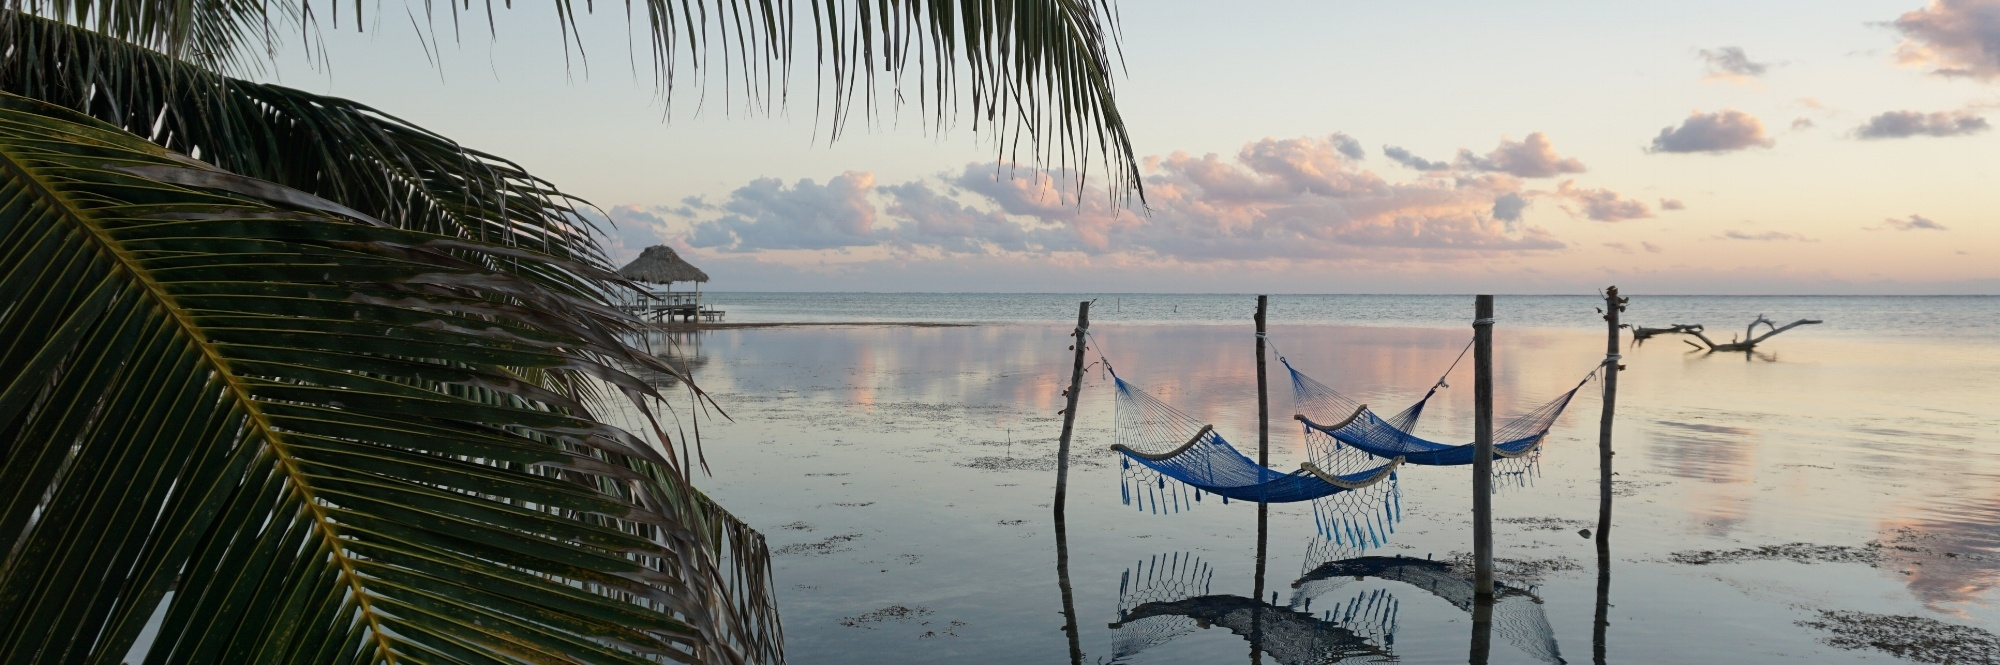 Belize Hammocks